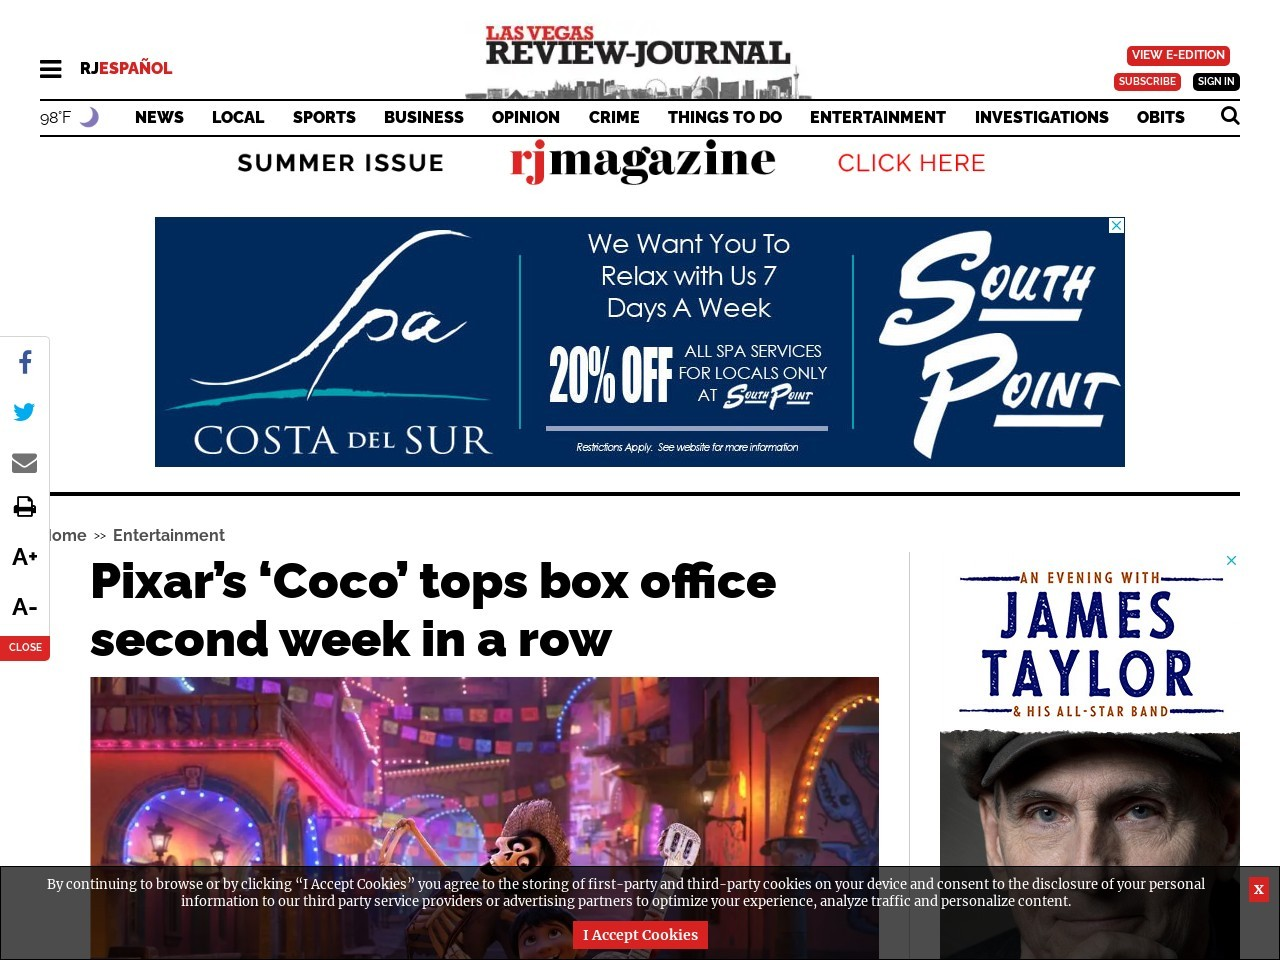 Pixar's 'Coco' tops box office second week in a row